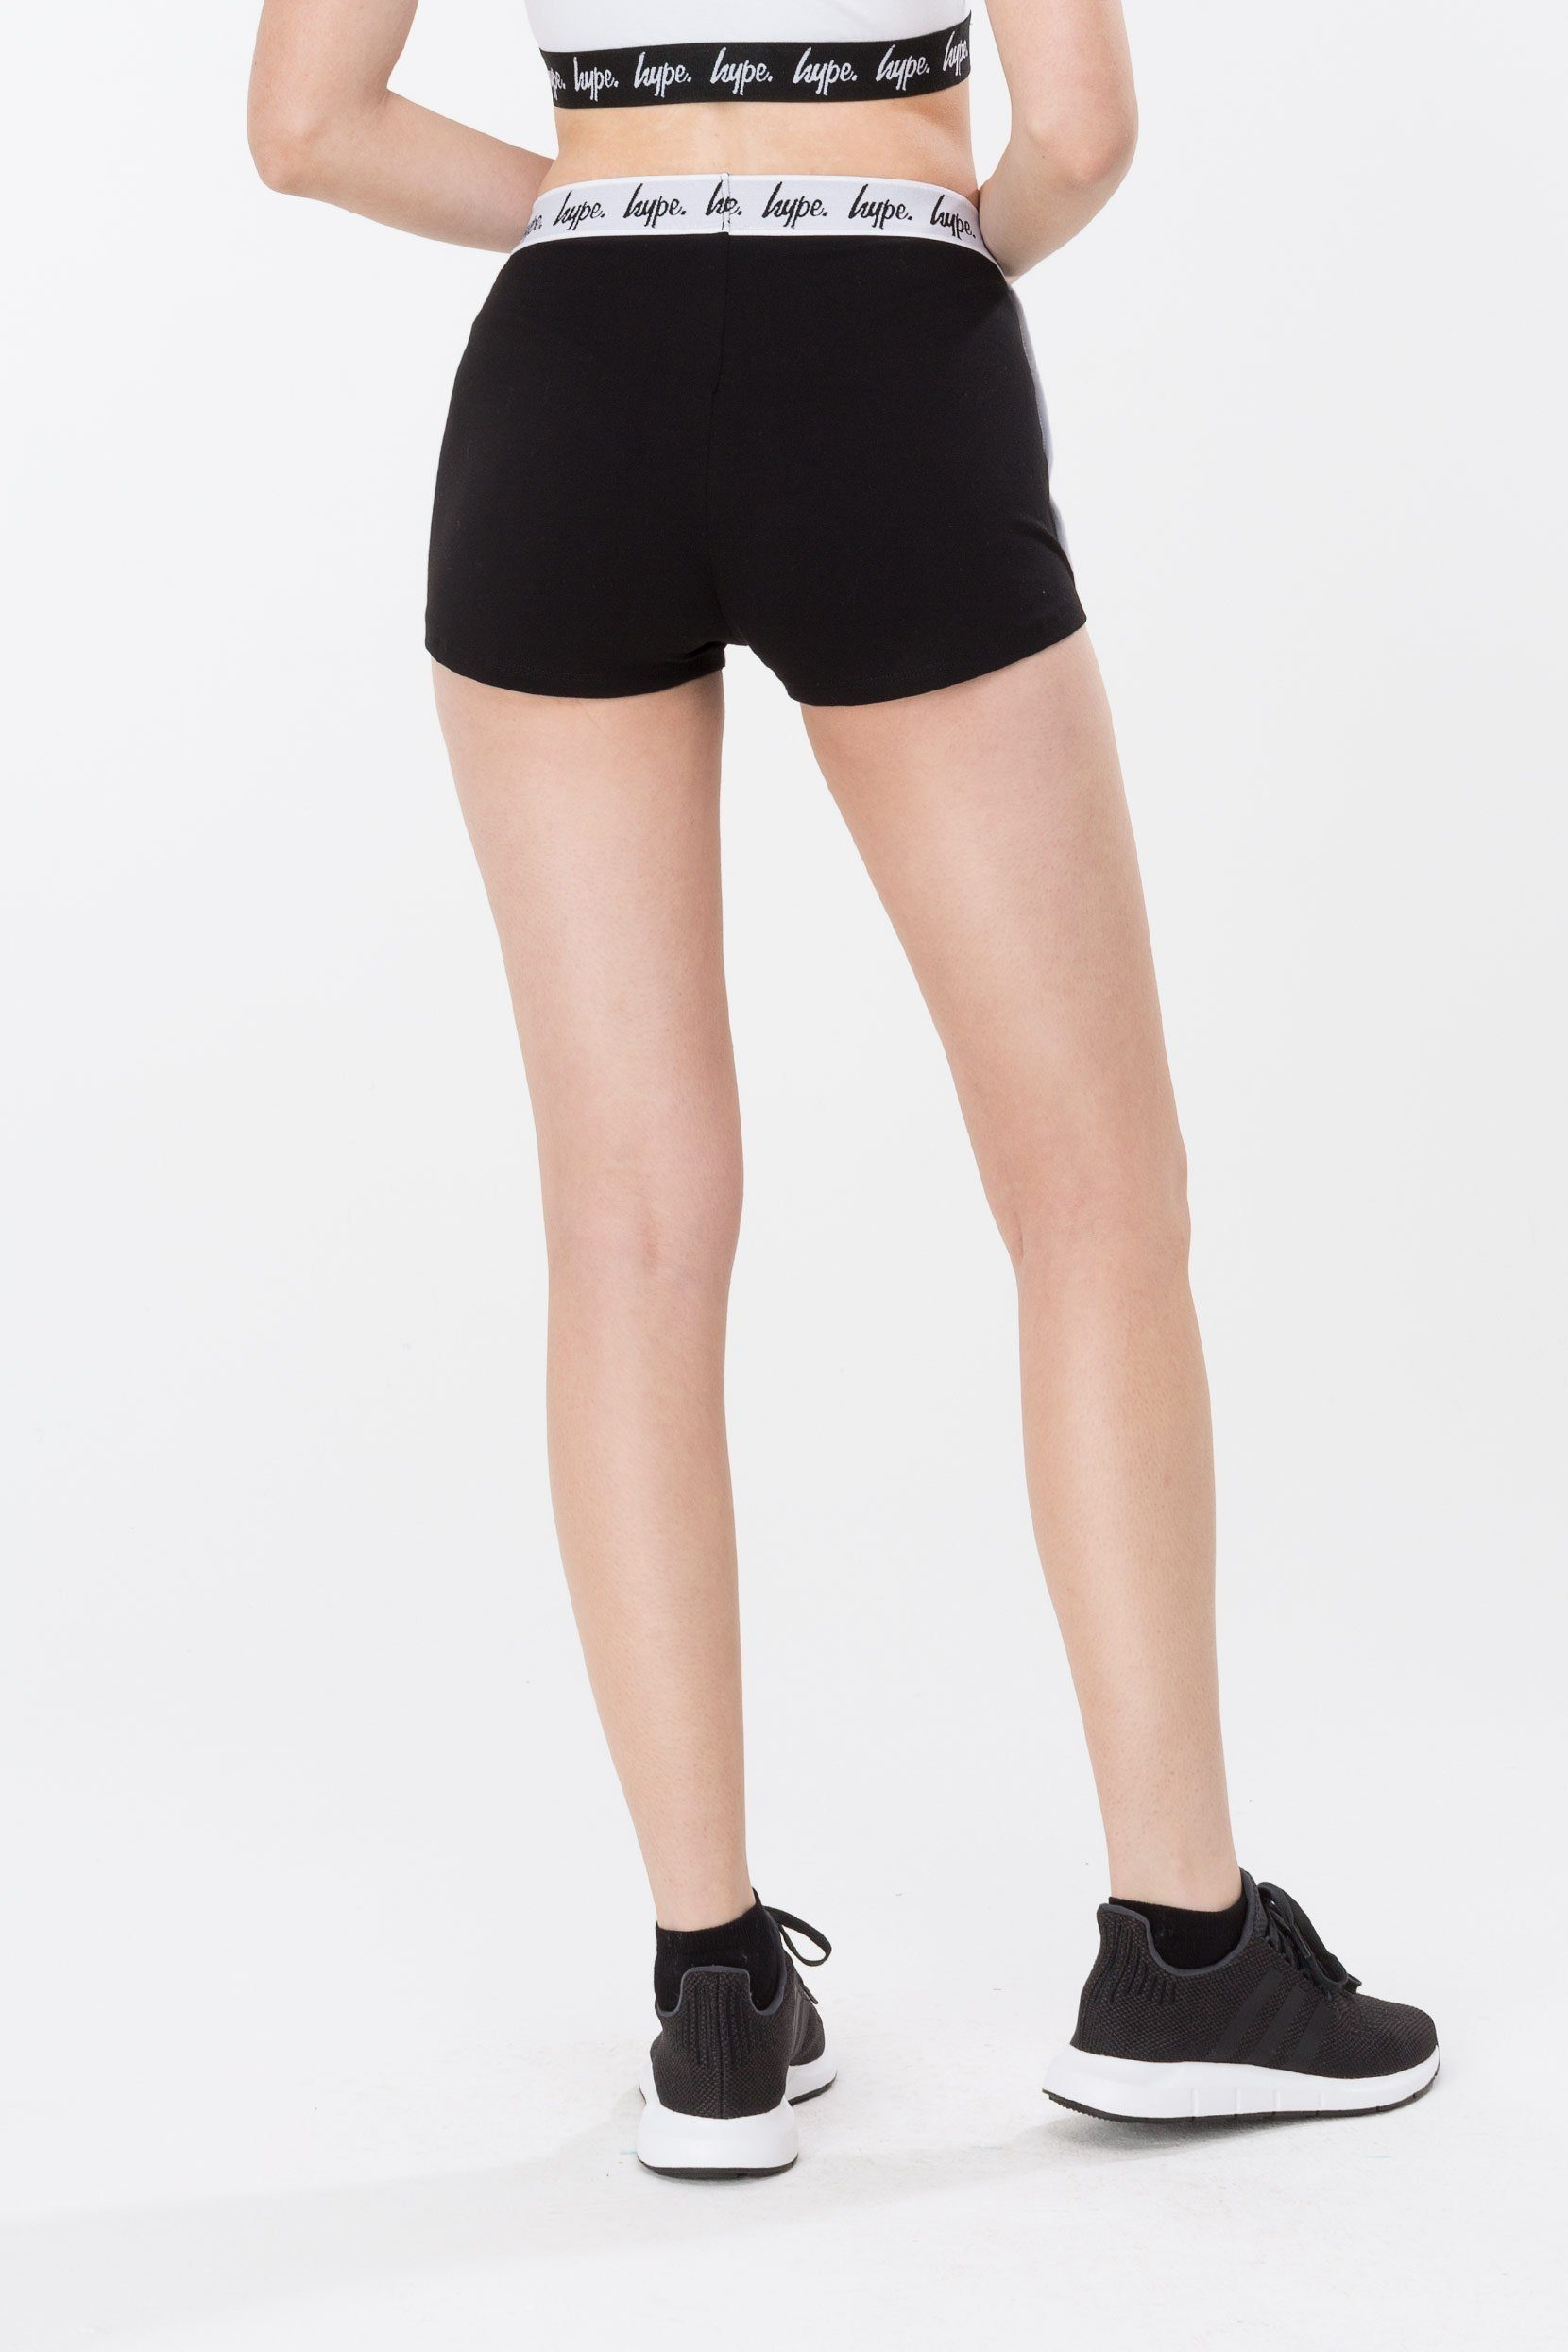 HYPE Black/White Mono Running Women's Shorts